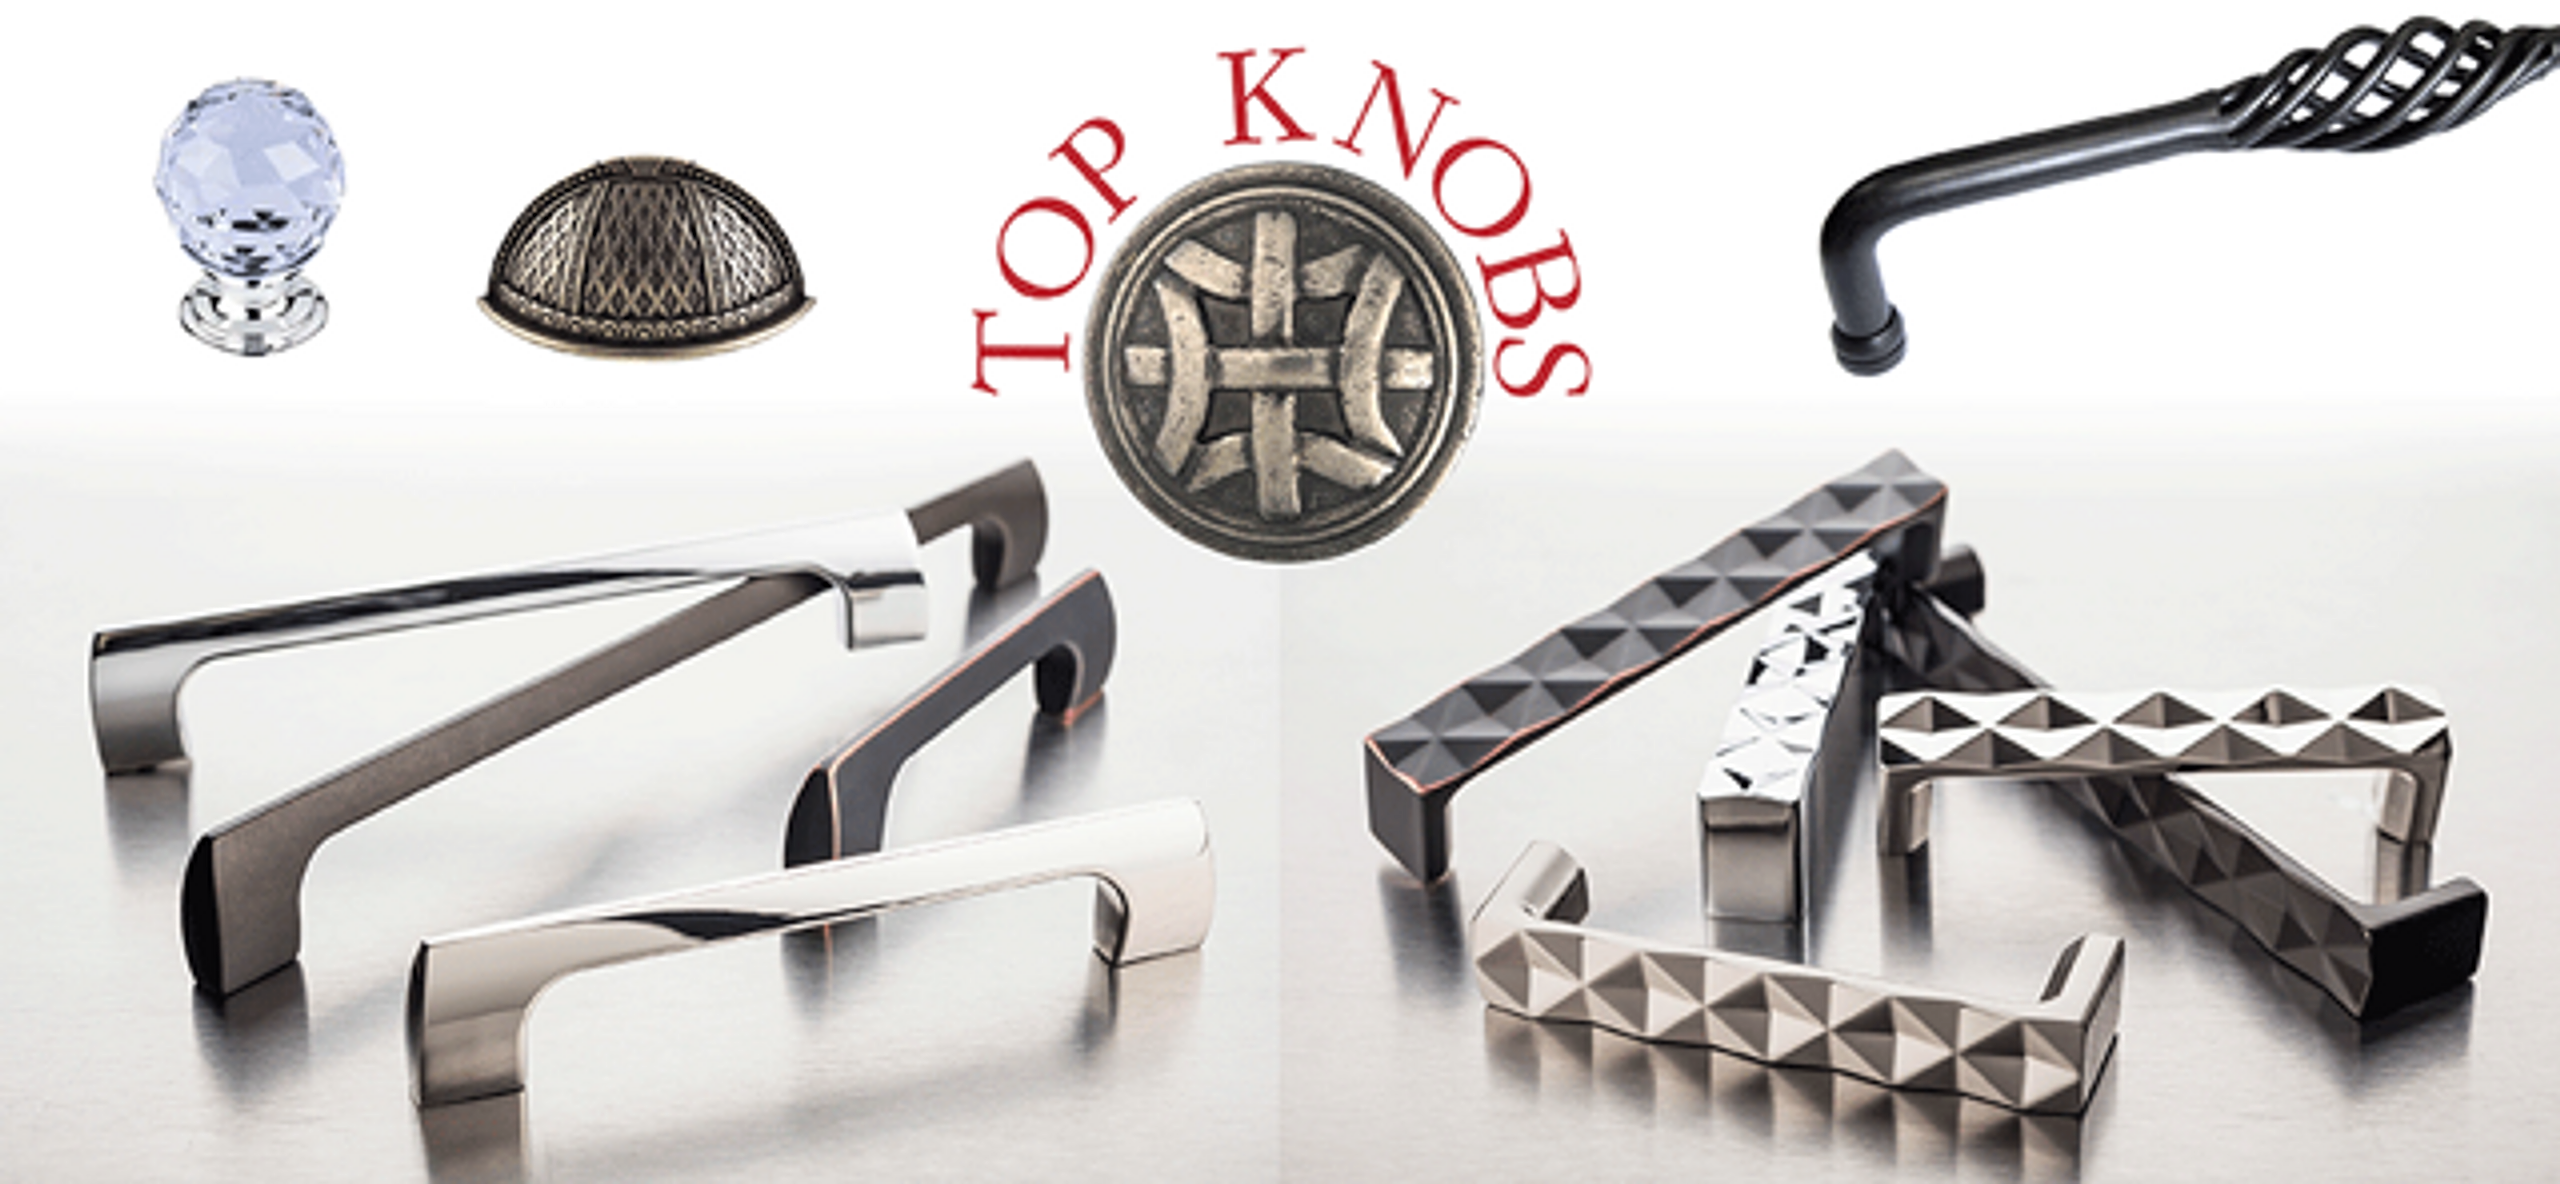 Image result for top knobs hardware logo